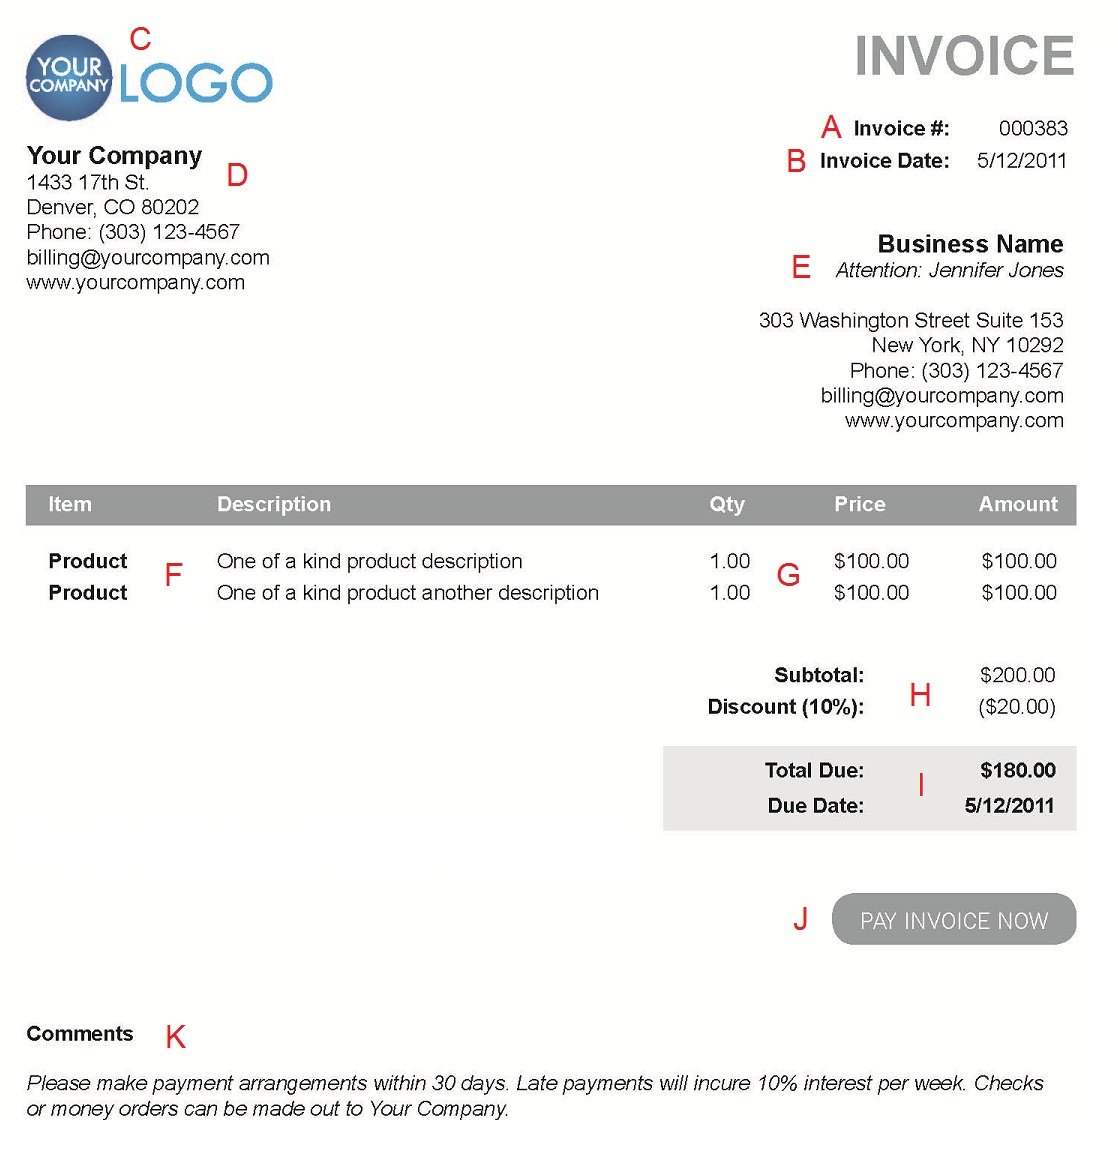 Darkfaderus  Picturesque The  Different Sections Of An Electronic Payment Invoice With Fair A  With Delightful Cargo Invoice Also Microsoft Dynamics Invoicing In Addition How To Write A Personal Invoice And Invoice Template In Excel  As Well As Unpaid Invoices Additionally Invoice Sample Word Format From Paysimplecom With Darkfaderus  Fair The  Different Sections Of An Electronic Payment Invoice With Delightful A  And Picturesque Cargo Invoice Also Microsoft Dynamics Invoicing In Addition How To Write A Personal Invoice From Paysimplecom